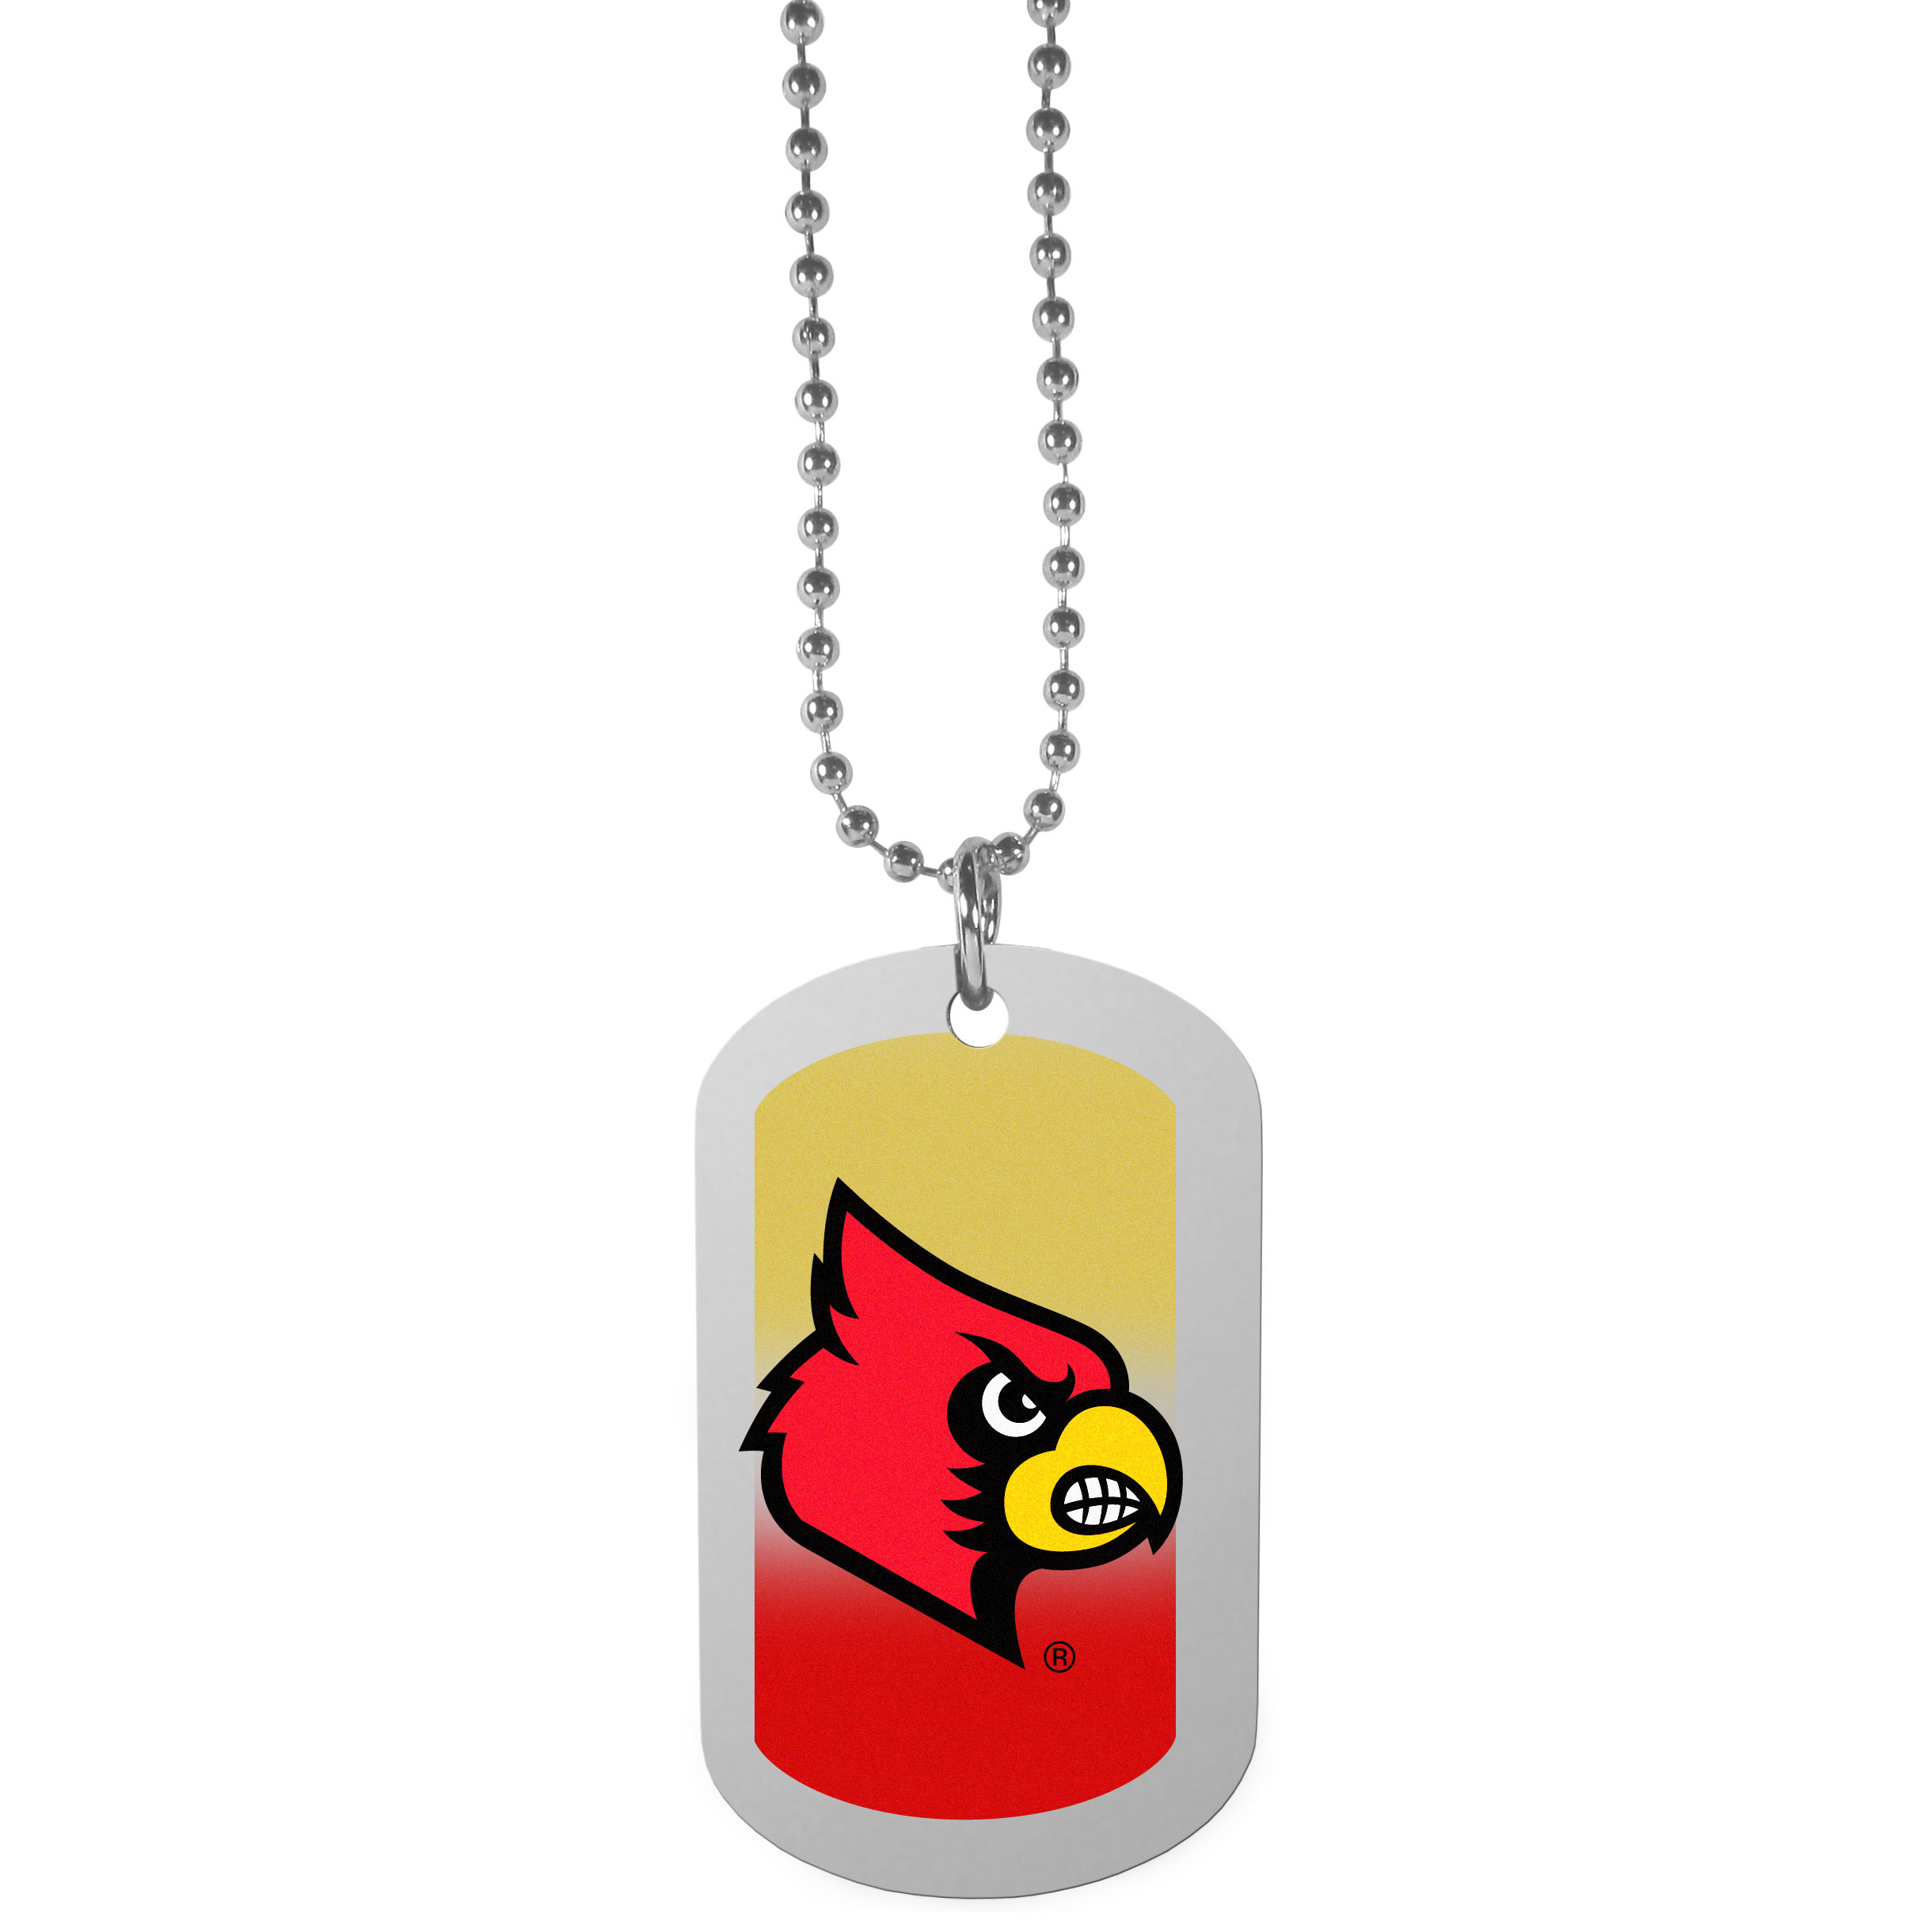 Louisville Cardinals Team Tag Necklace - Dog tag necklaces are a fashion statement that is here to stay. The sporty version of the classic tag features a gradient print in team colors featuring a full color team logo over a high polish tag to create a bold and sporty look. The tag comes on a 26 inch ball chain with a ball and joint clasp. Any Louisville Cardinals would be proud to wear this attractive fashion accessory.